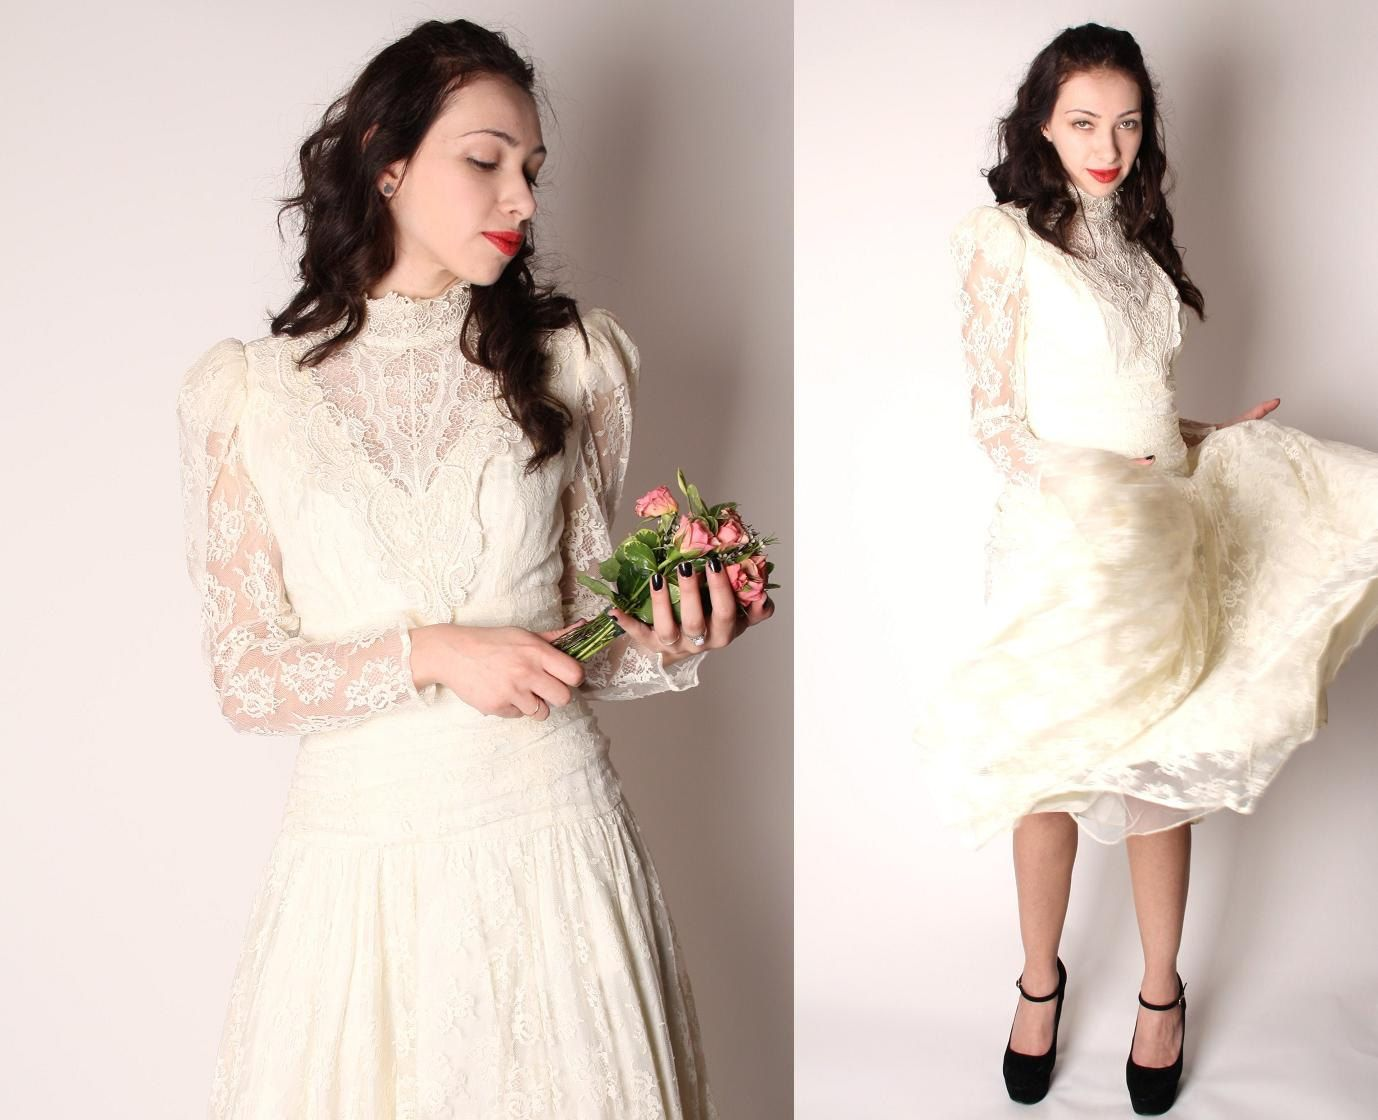 Anne of green gables wedding dress  s Vintage Romantic Vampire Peach Lace Victorian by aiseirigh